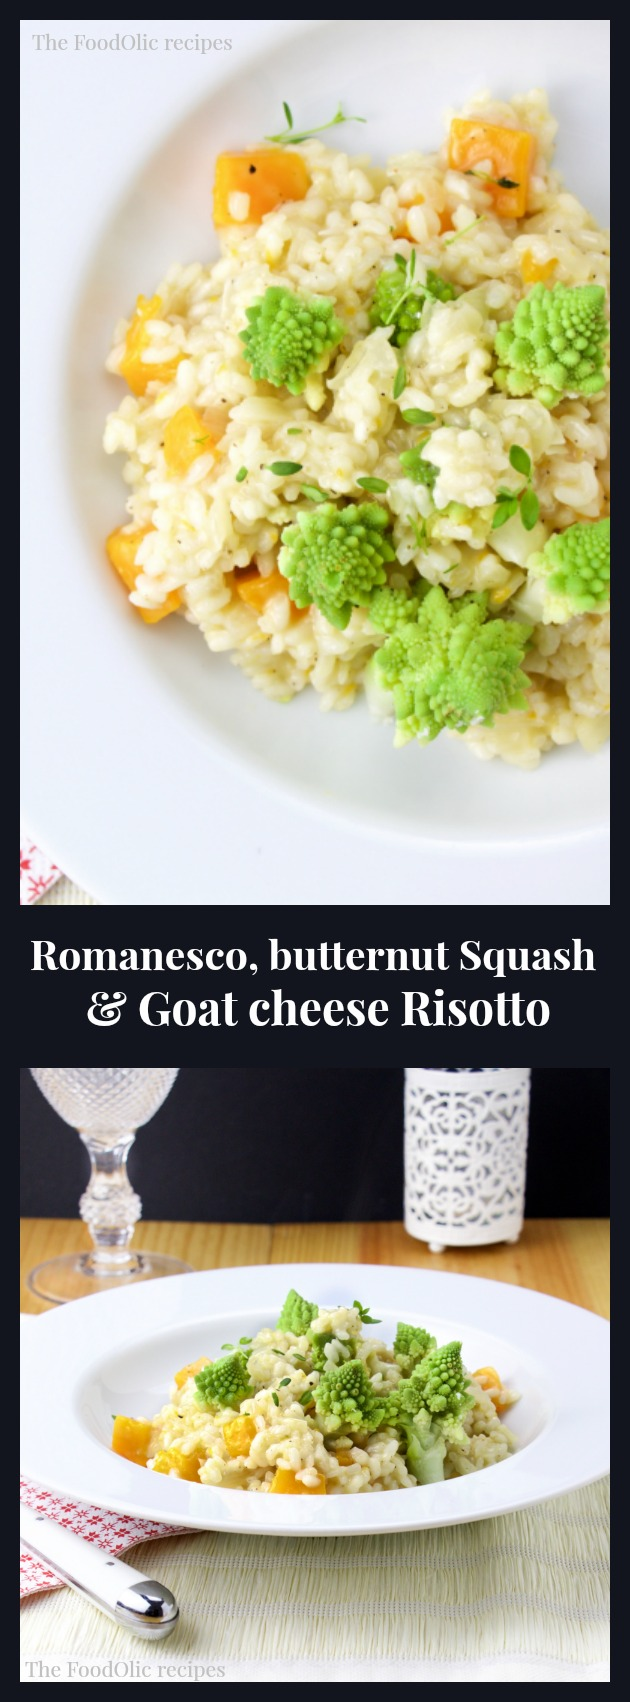 risotto goat cheese